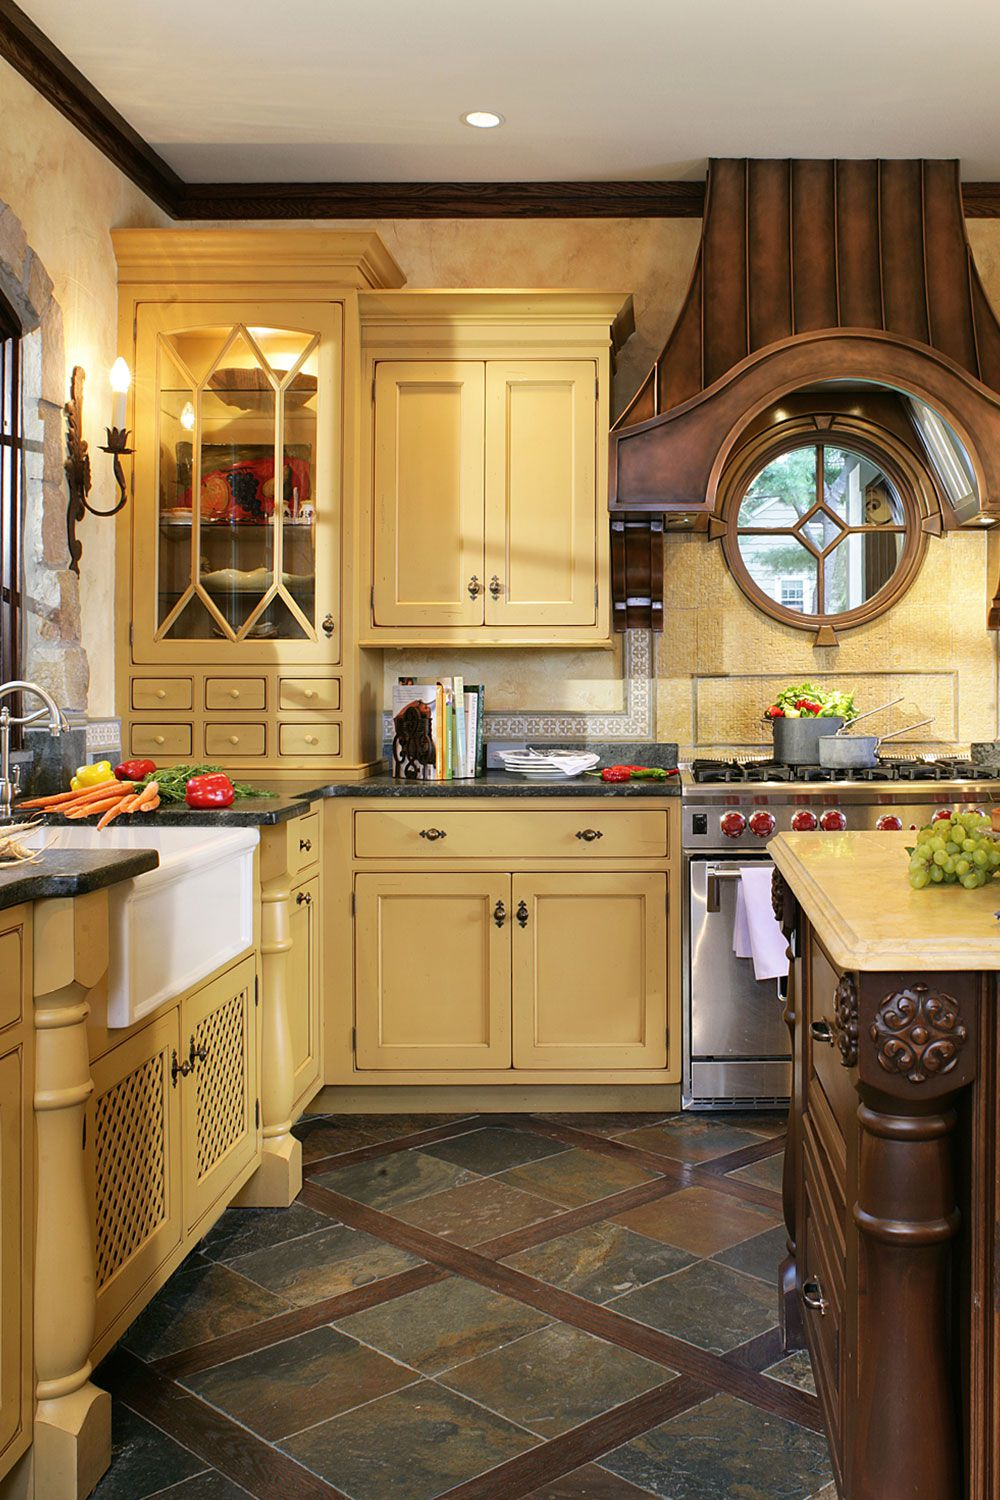 21 Yellow Kitchen Ideas - Decorating Tips for Yellow Colored Kitchens